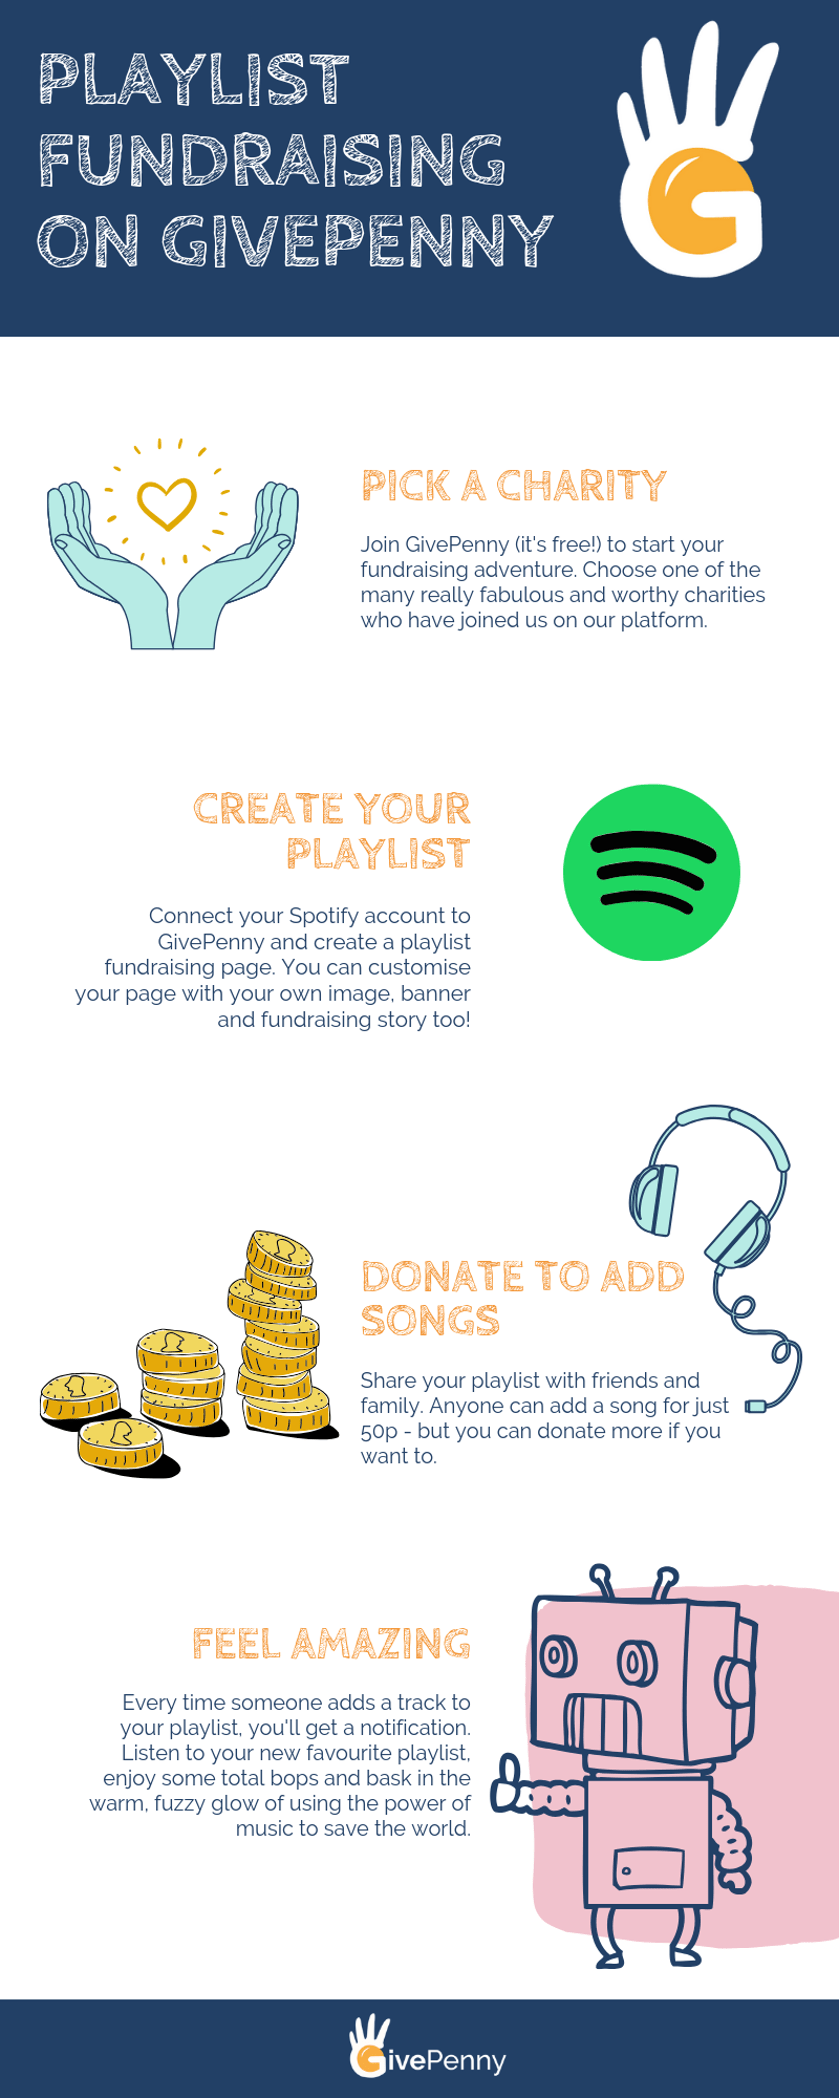 Infographic explaining how playlist fundraising with Spotify works on GivePenny